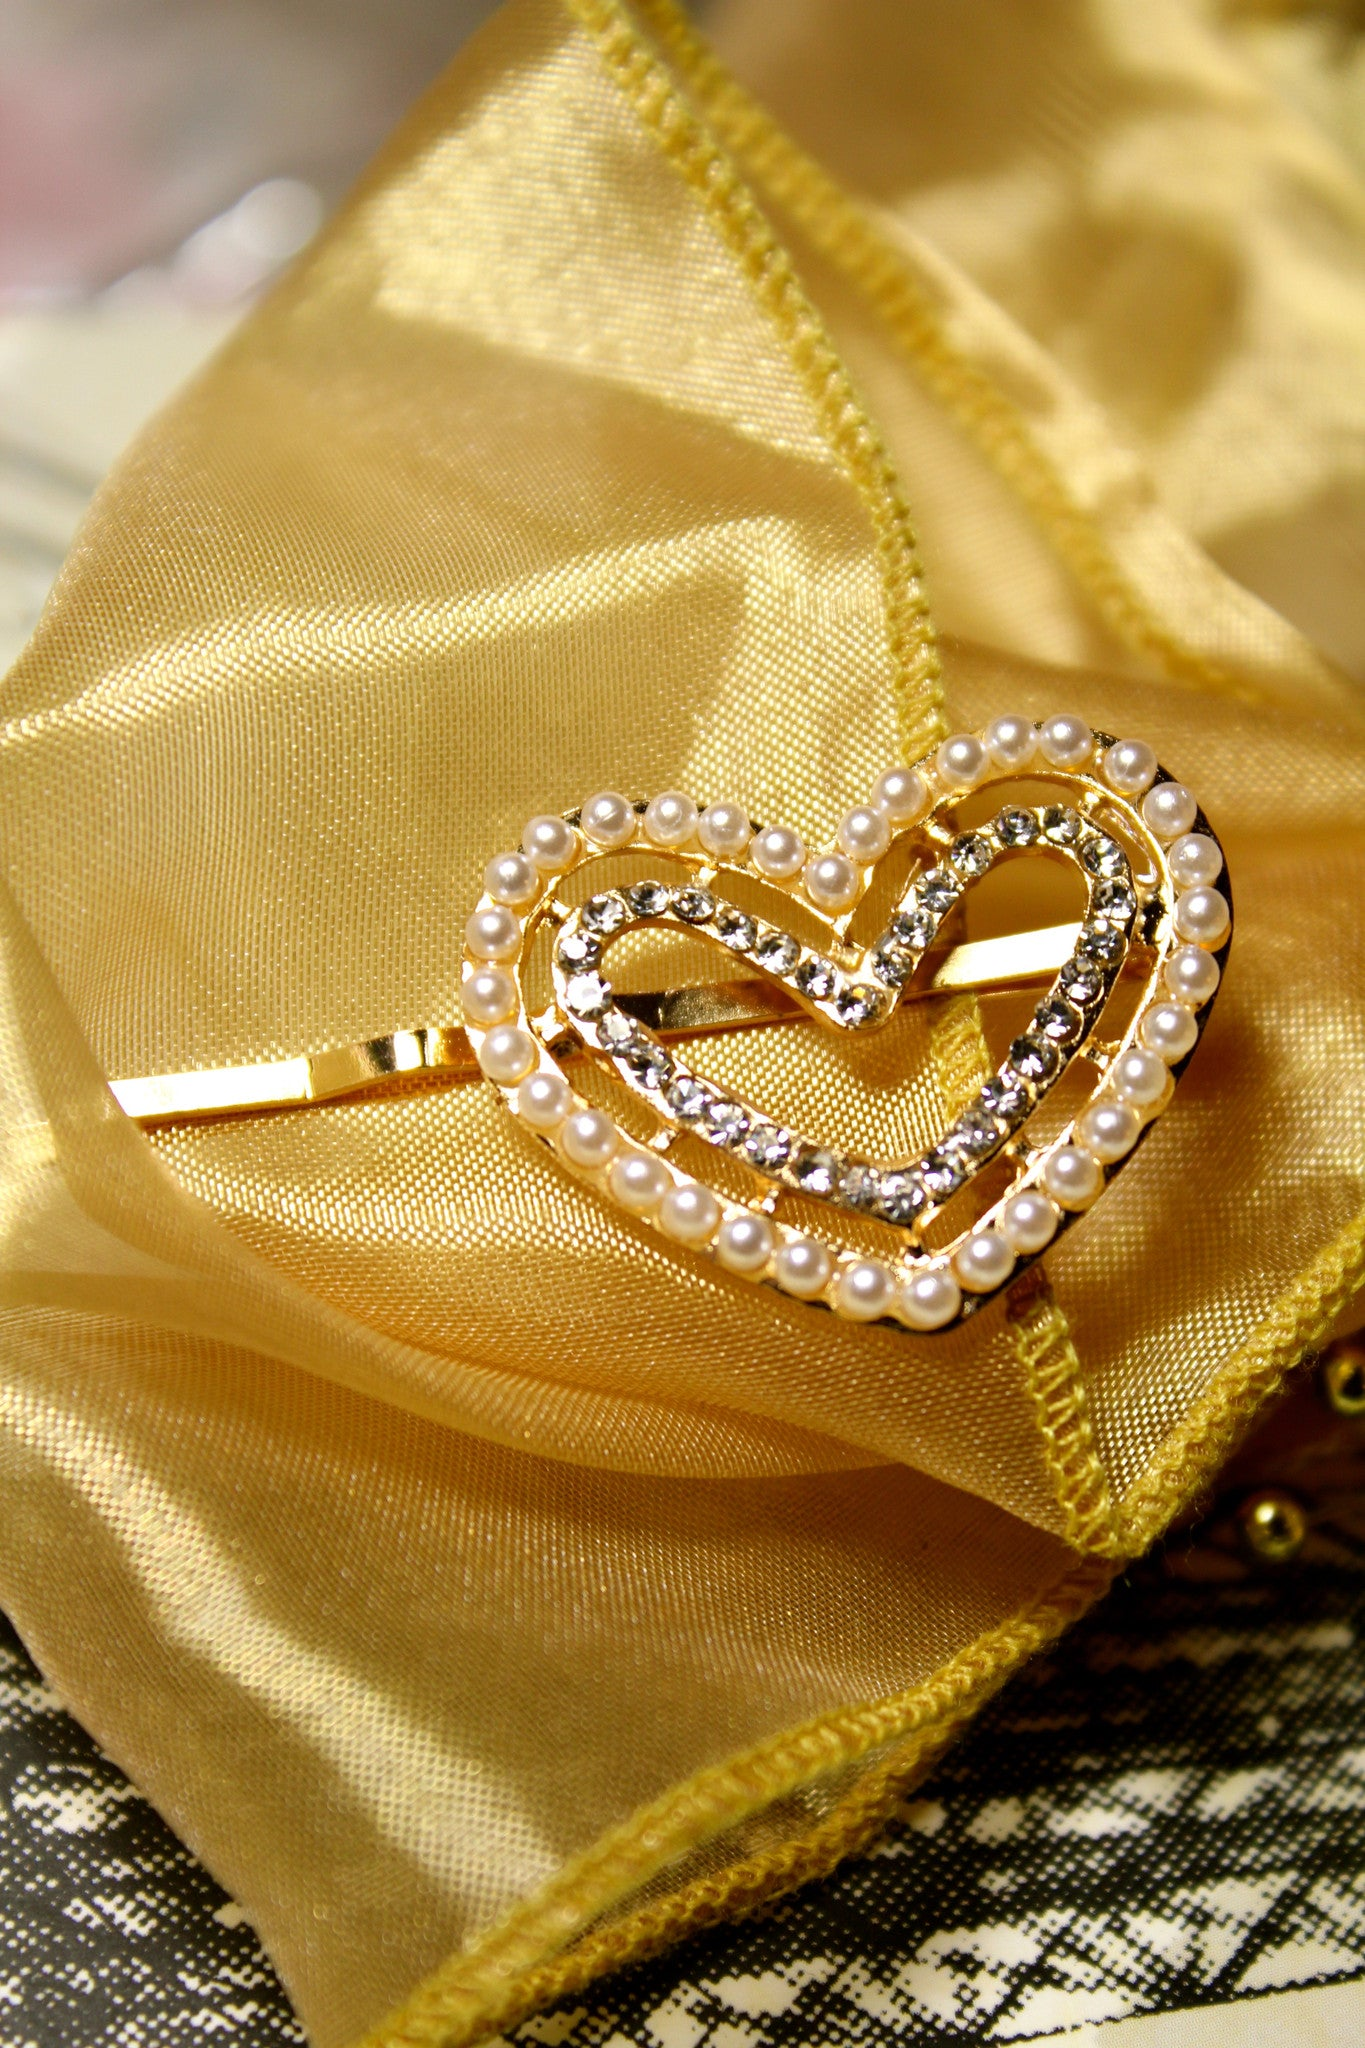 The Goddess's Heart Pin